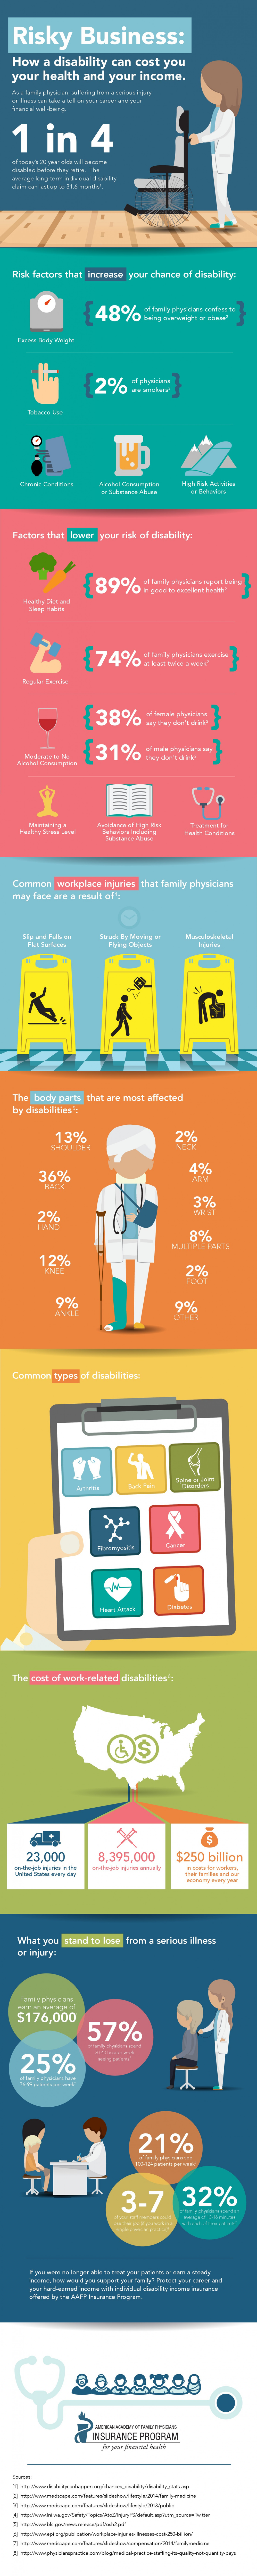 Risky Business: How a Disability Can Cost You Your Health and Your Income Infographic